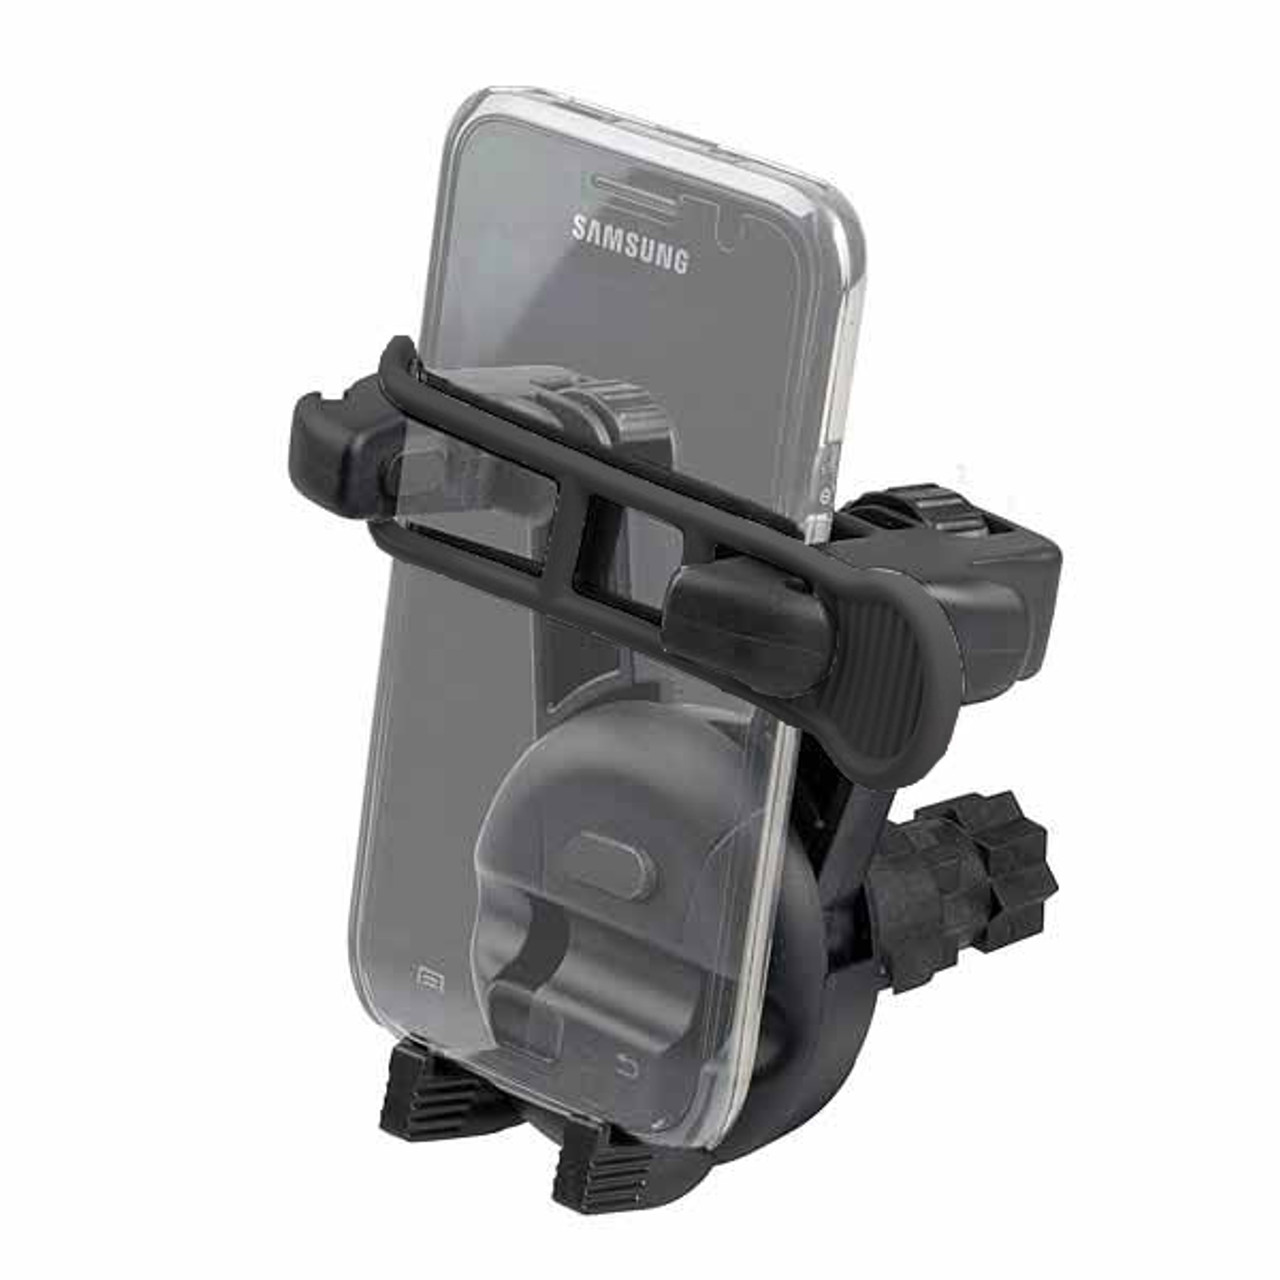 MOBI DEVICE HOLDER LOW PROFILE (02-4034-11)